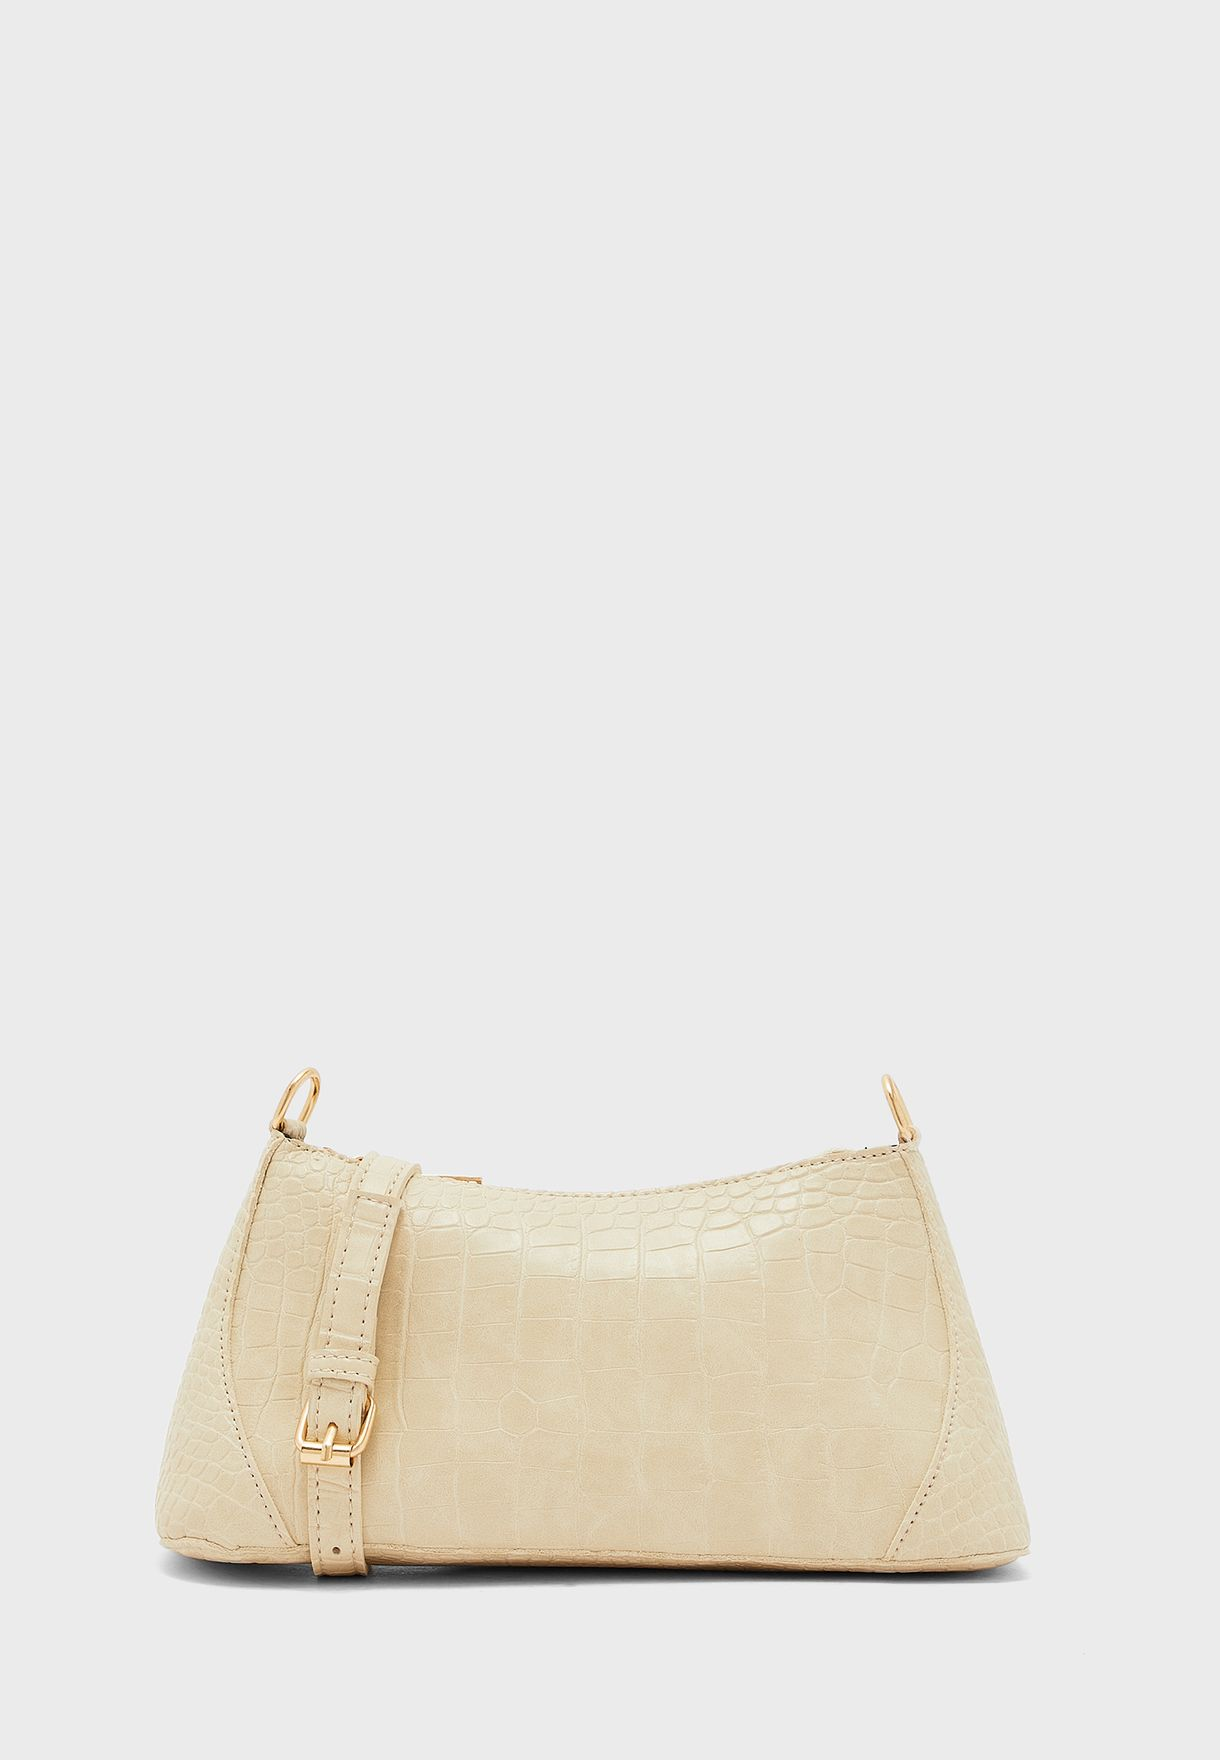 Croc Baguette Shoulder Bag